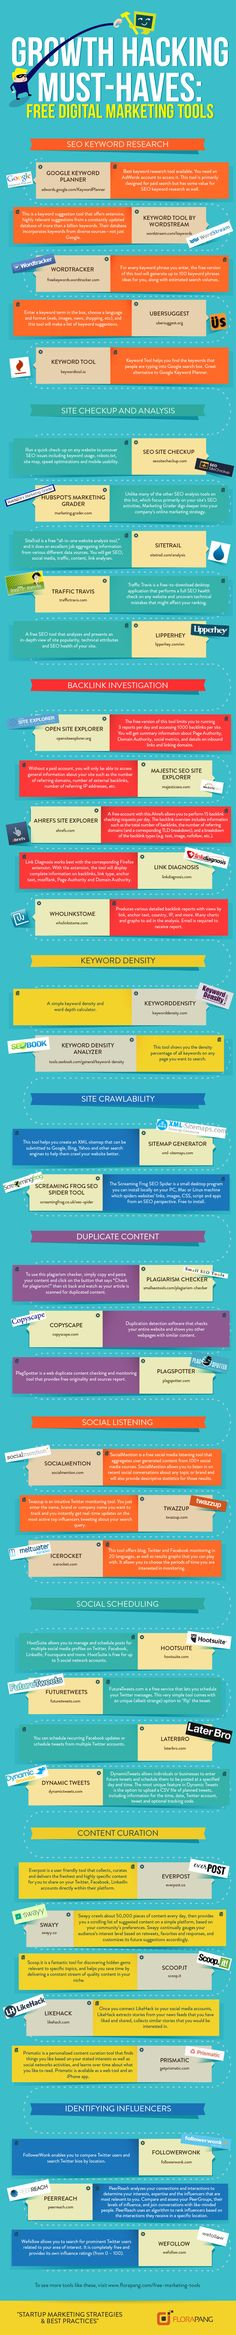 If you are like most startups, spending $5000+ a month on tools is simply not feasible. That is okay. There are plenty of free alternatives to these tools that are more than good enough. Yes, they arecompletely free. I am such an avid user of free tools that I began collecting them. This infographic features the cream of the crop of free digital marketing tools. #infographic